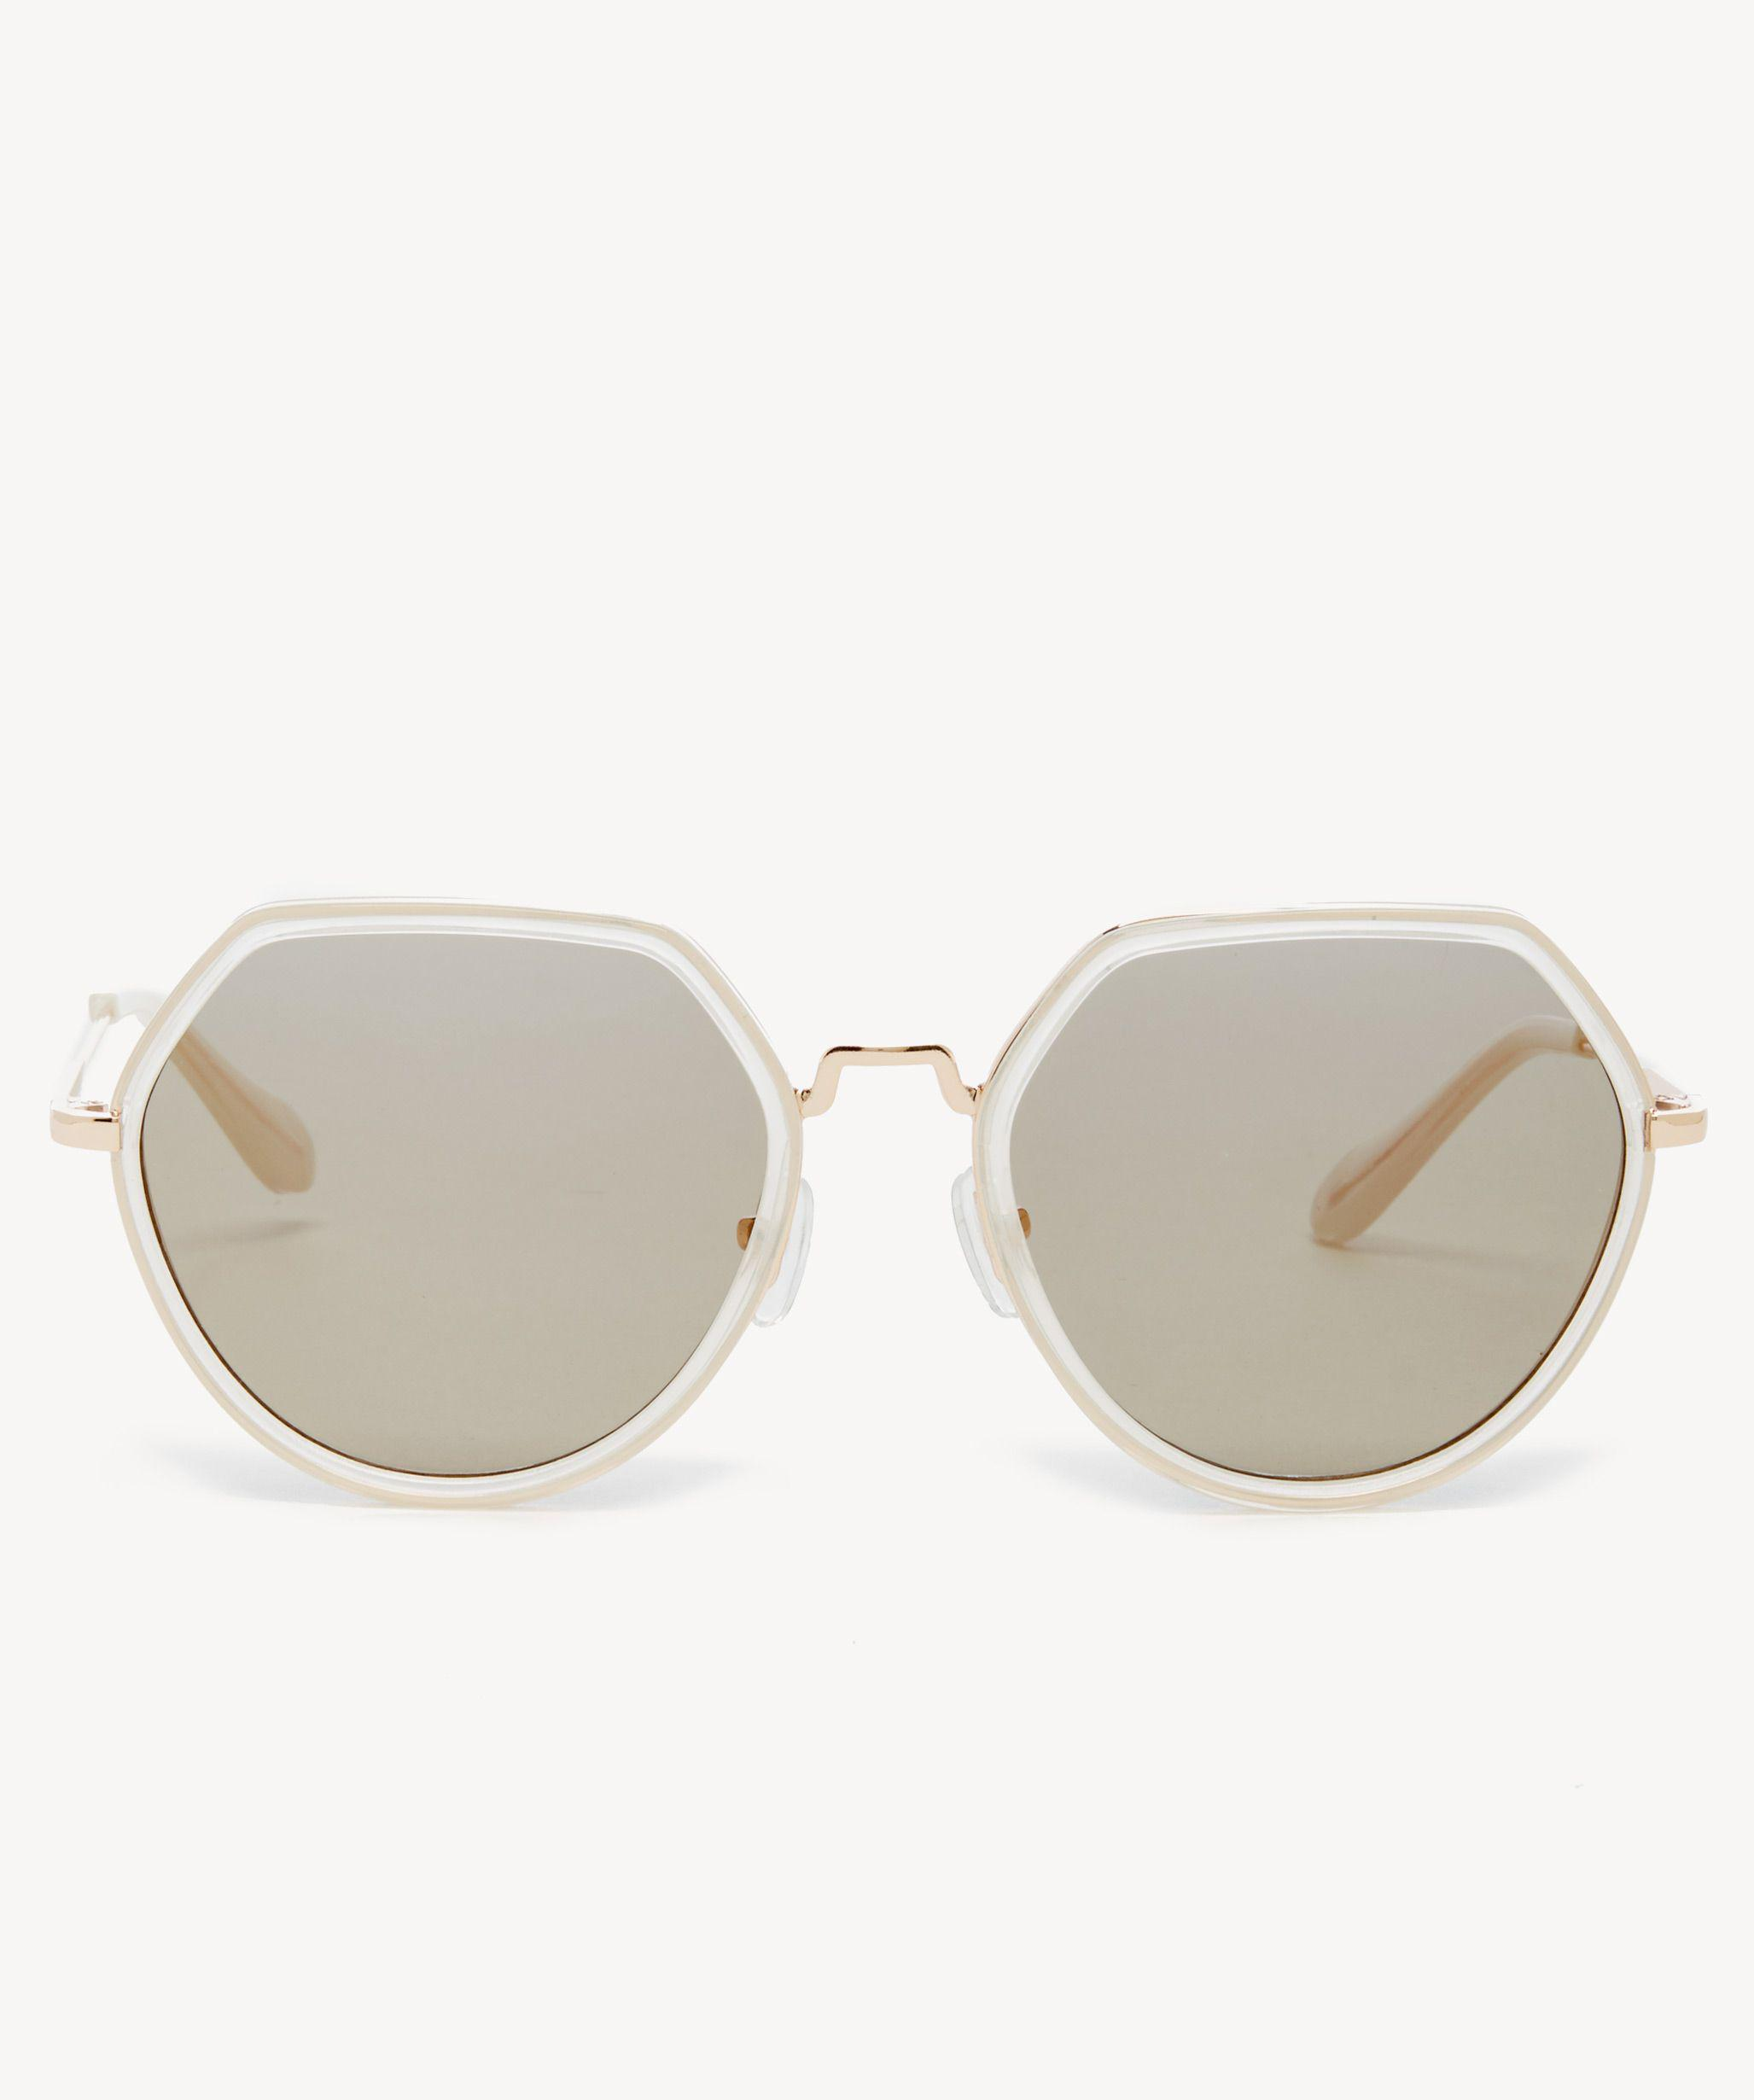 653cff56adc Lyst - Sole Society Roswel Oversize Square Frame Sunglasses